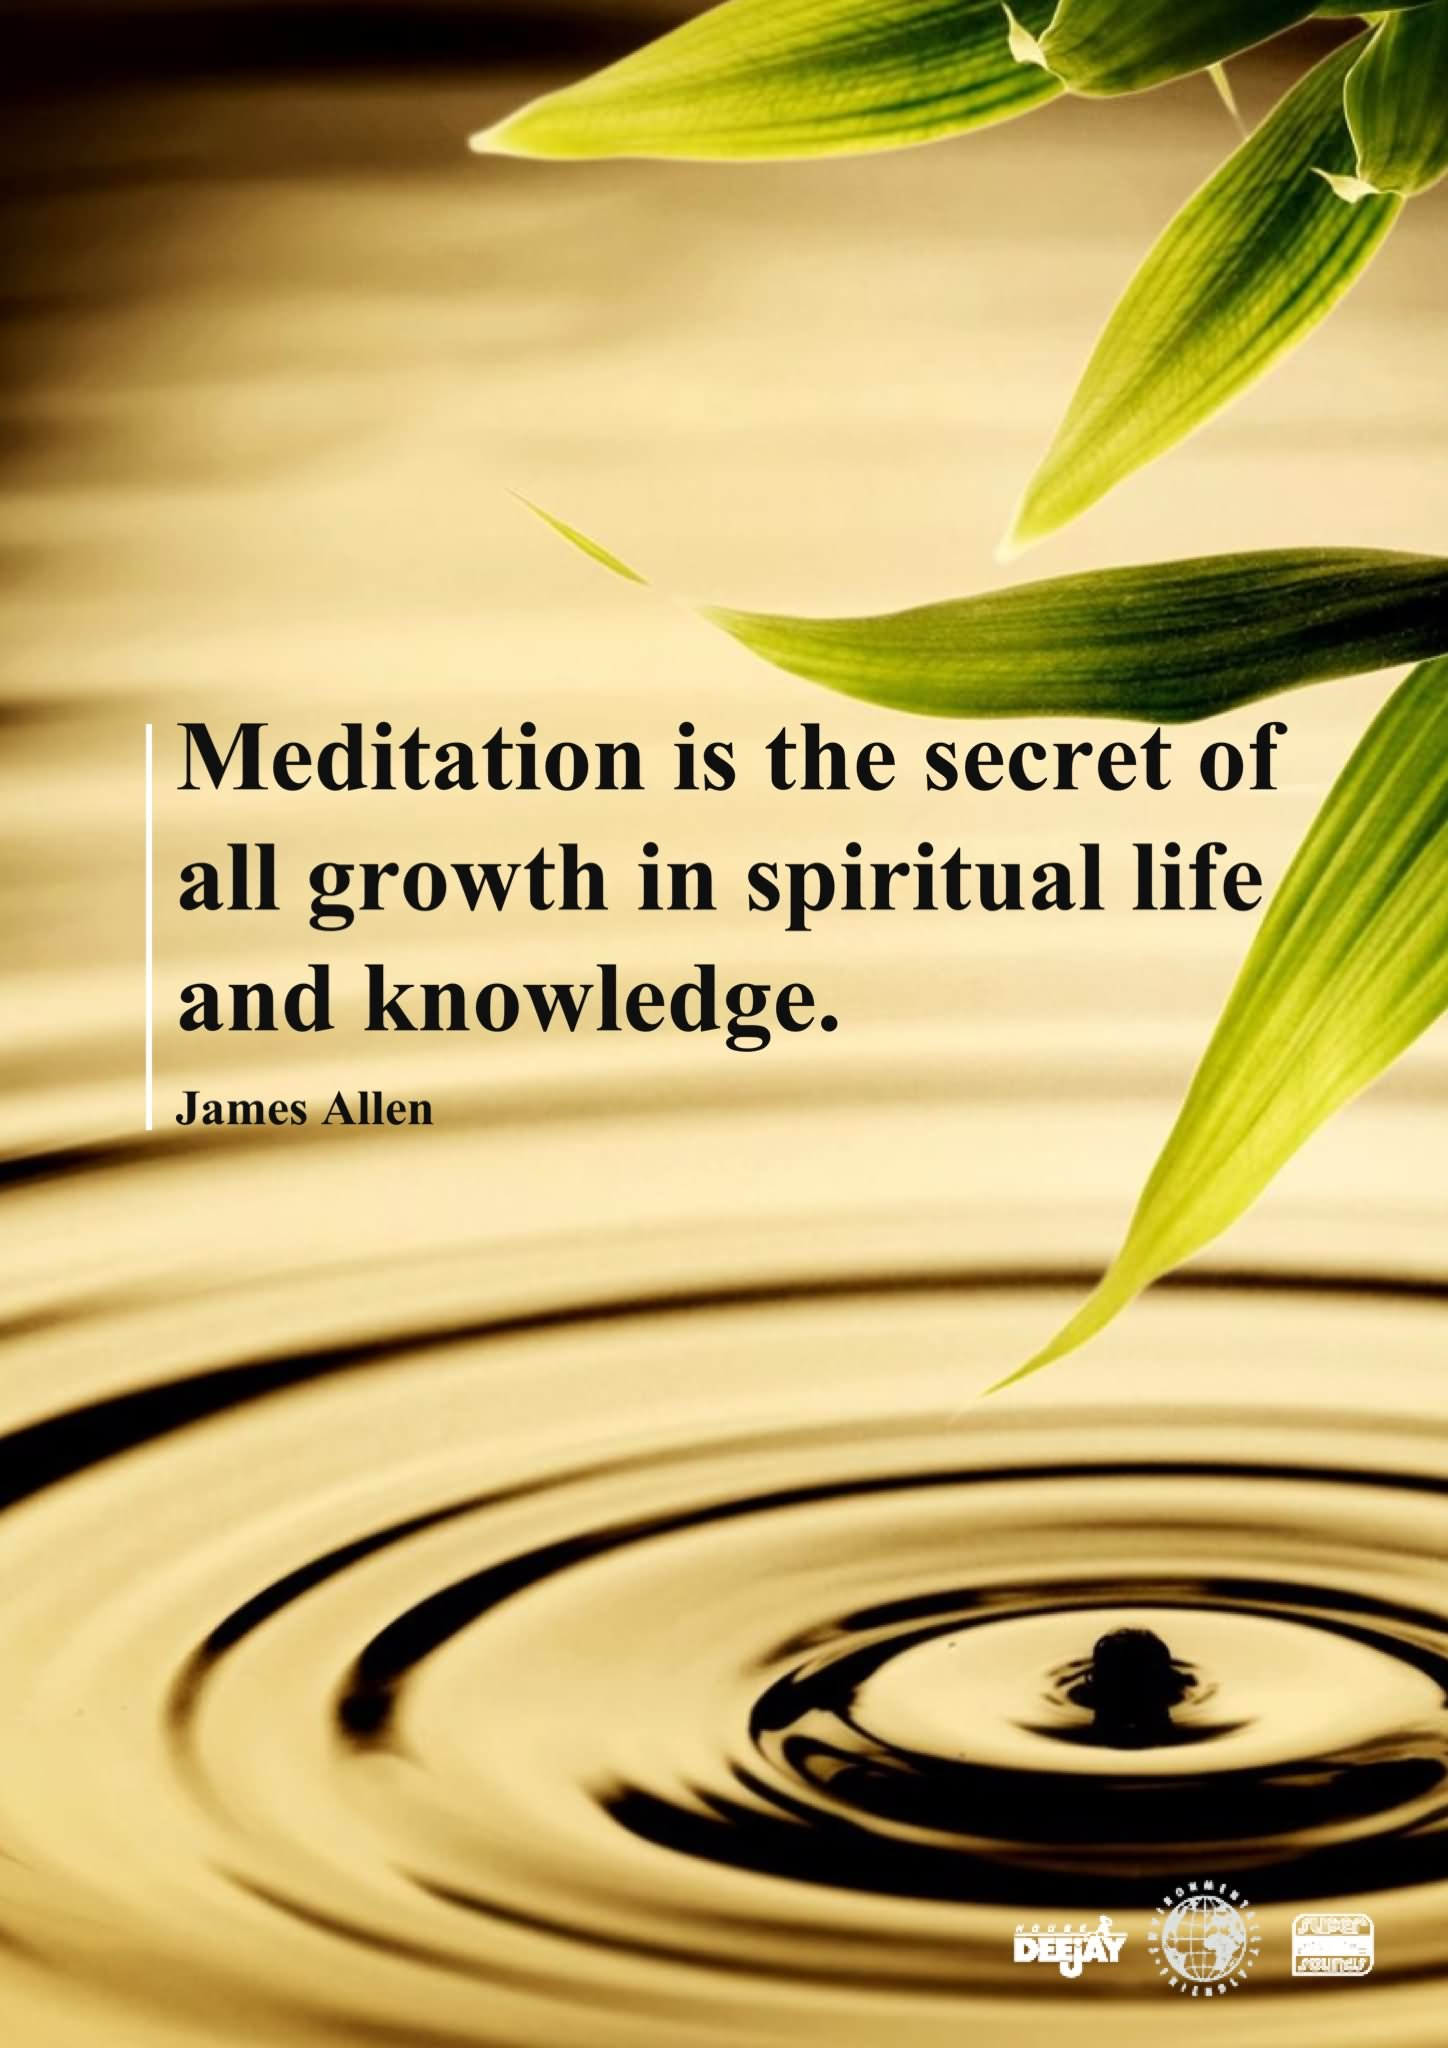 61 Best Meditation Quotes And Sayings For Inspiration